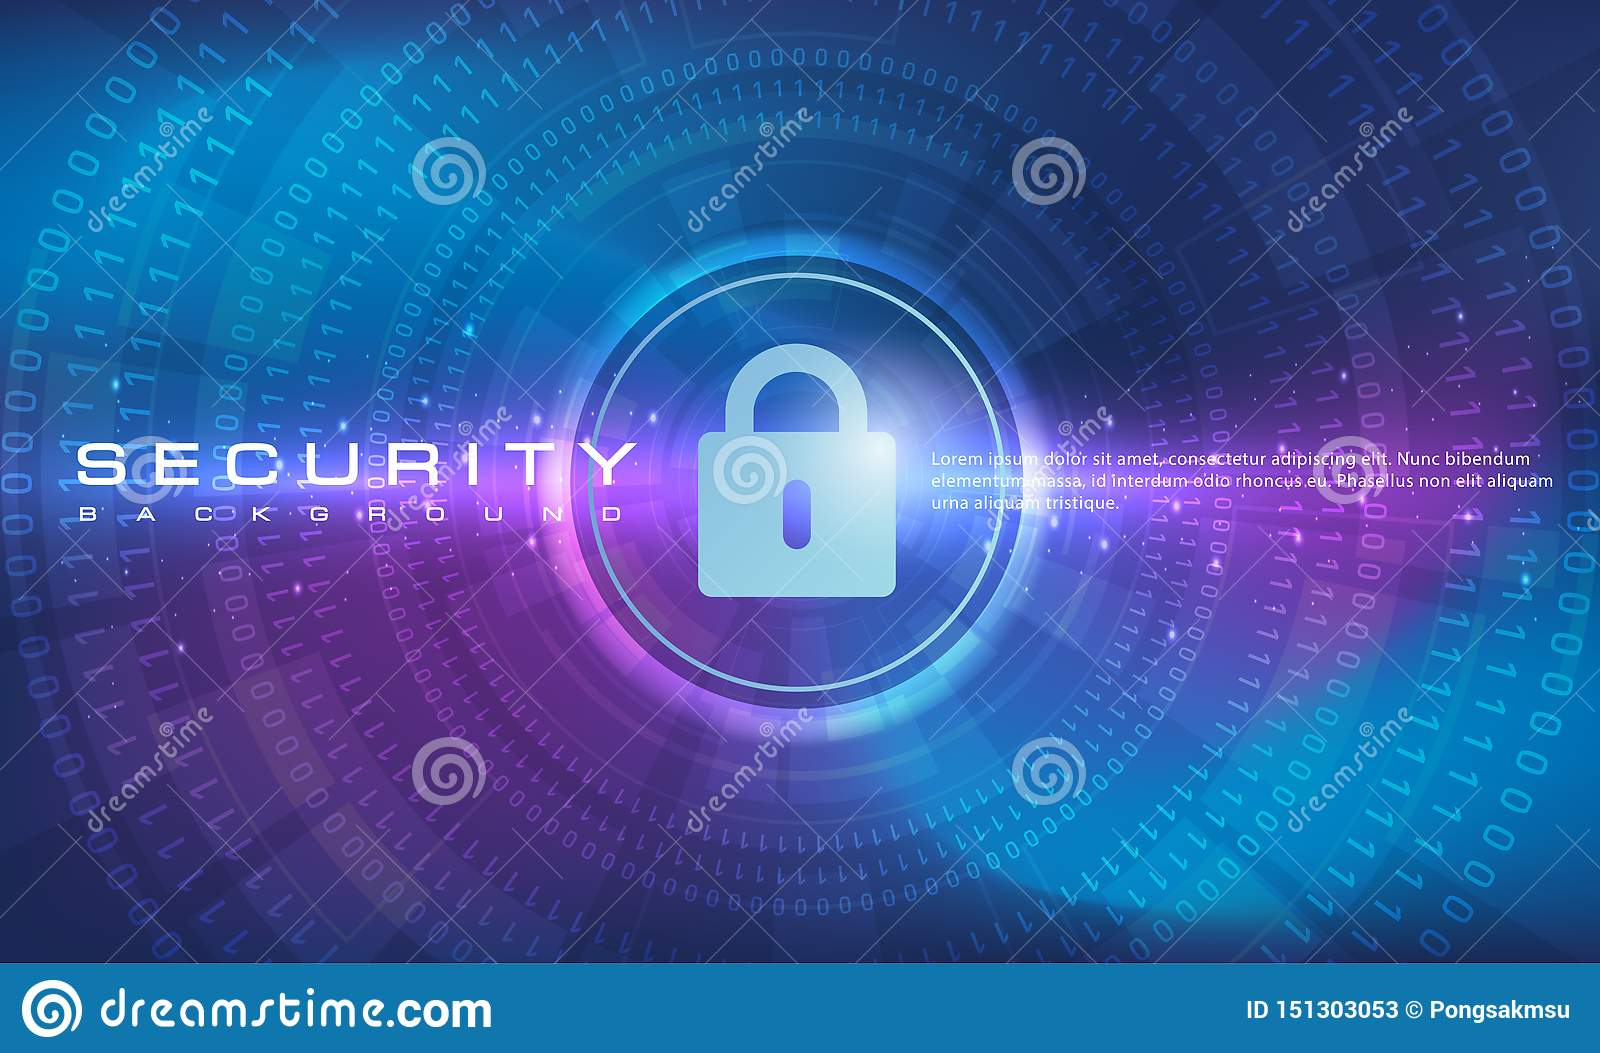 Abstract security technology banner blue purple background concept with line and binary code effects technology, blue background